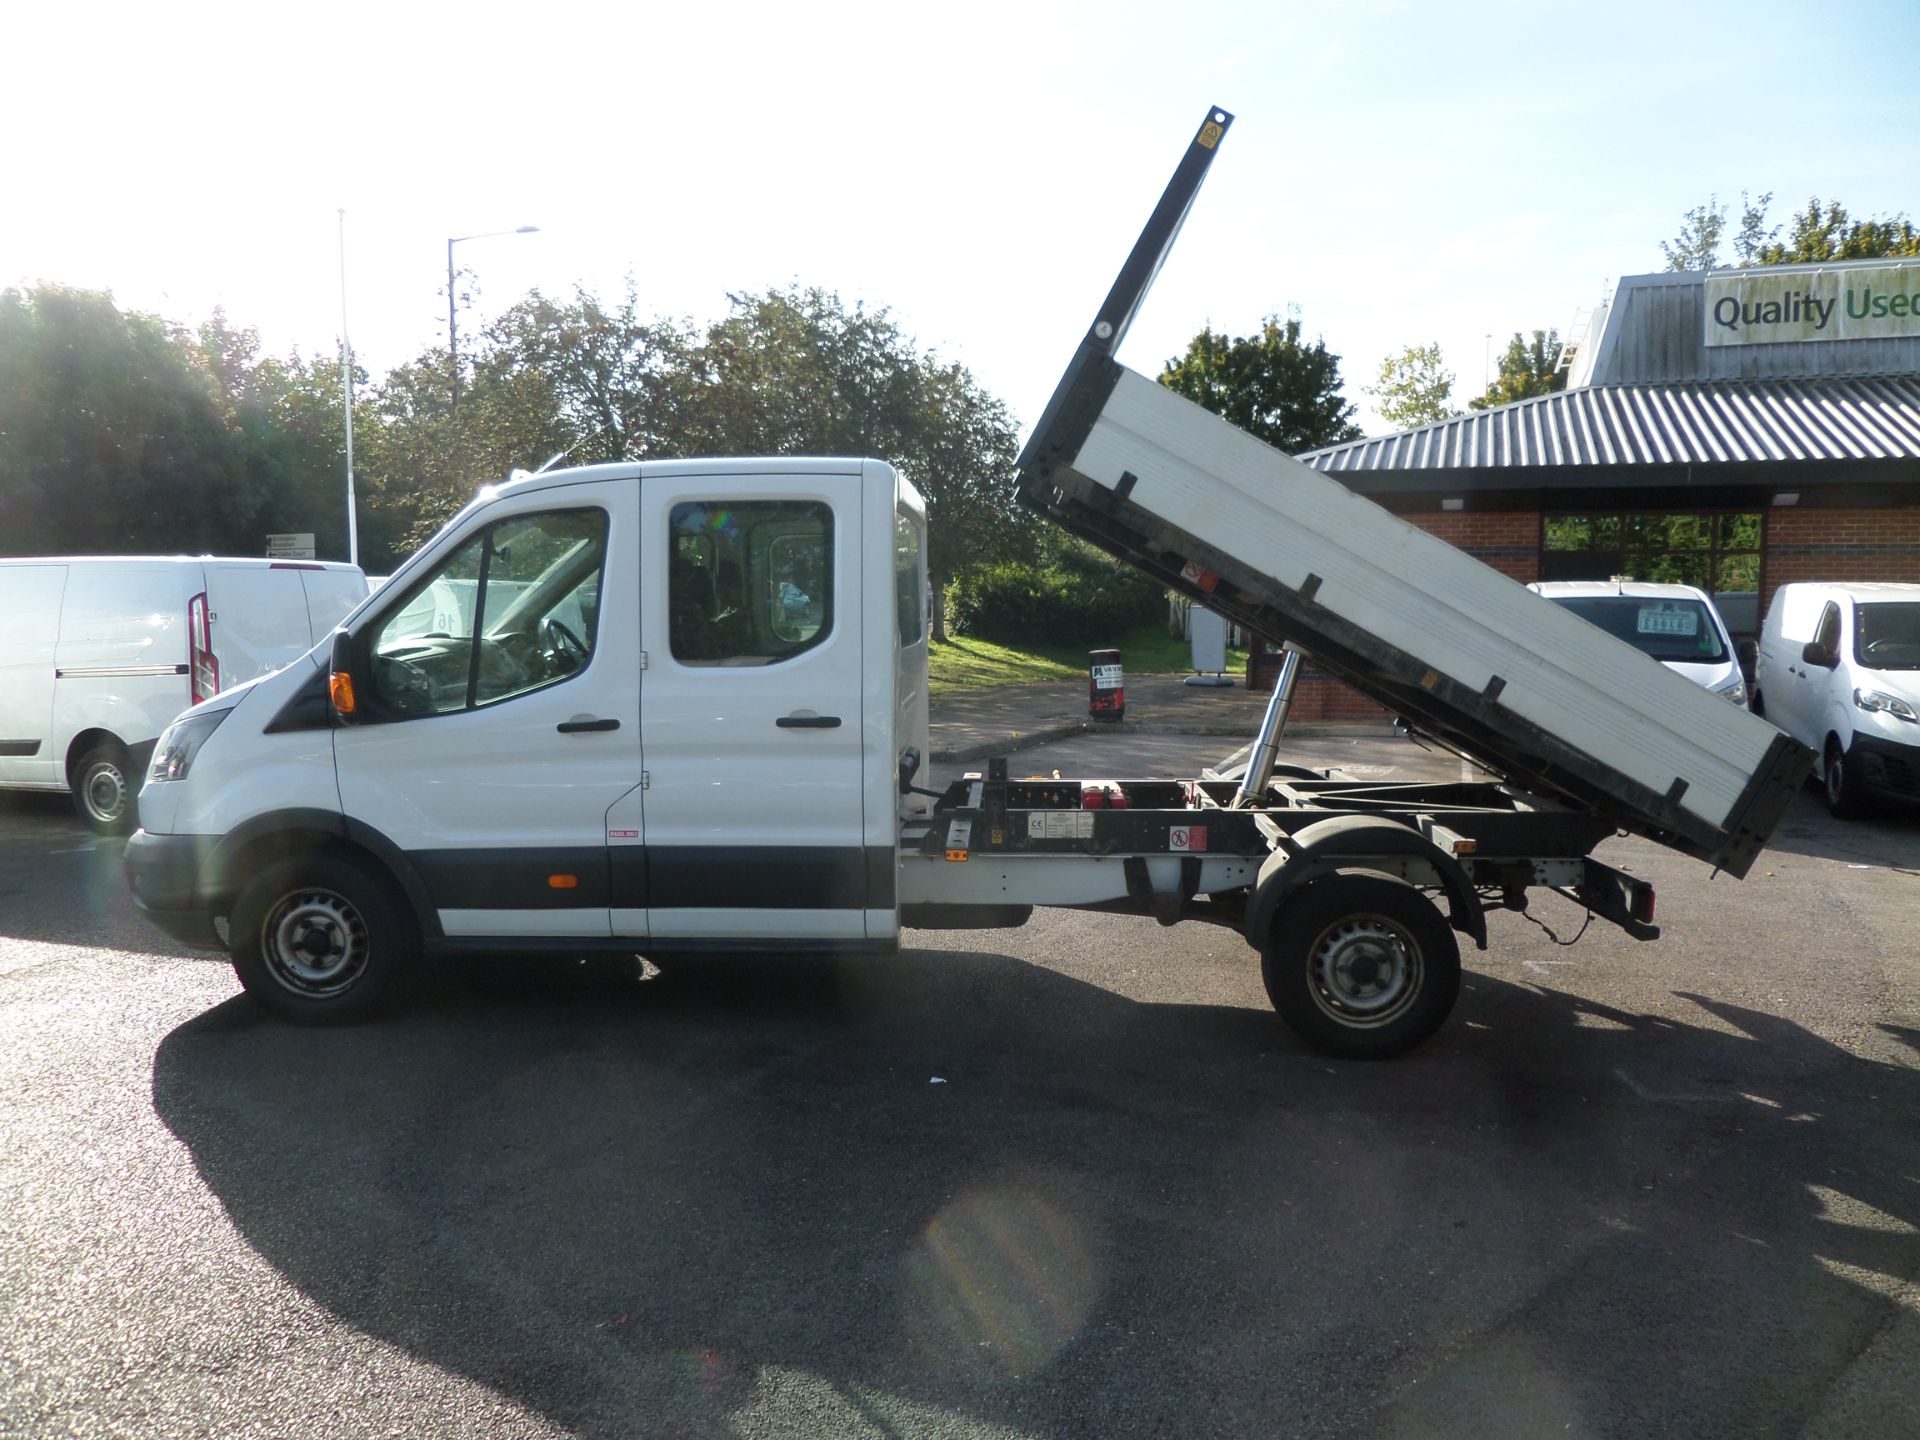 2017 Ford Transit 2.0 Tdci 105Ps H2 Double Cab Tipper Euro 6 (HV67HJC) Image 7